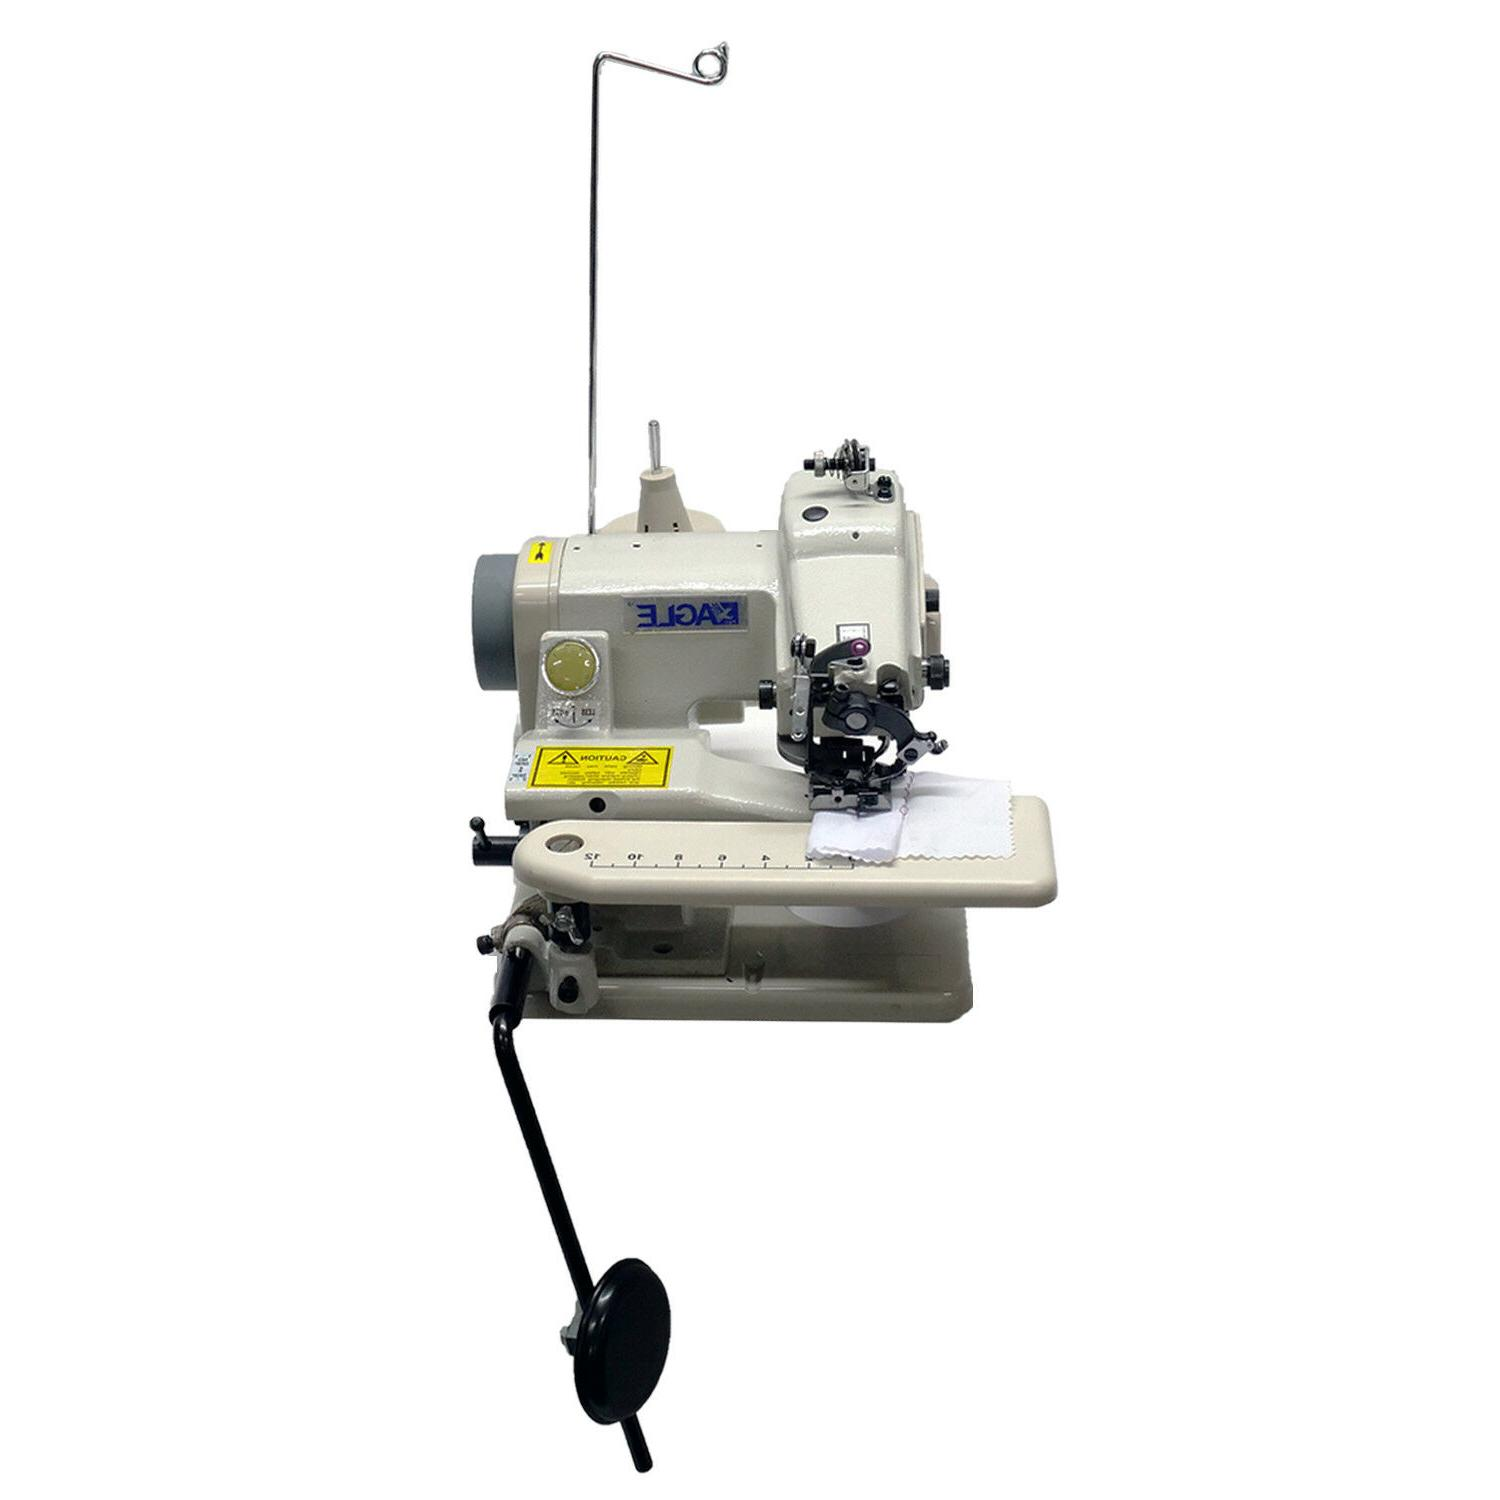 Eagle CM-500 Sewing Machine With Needles